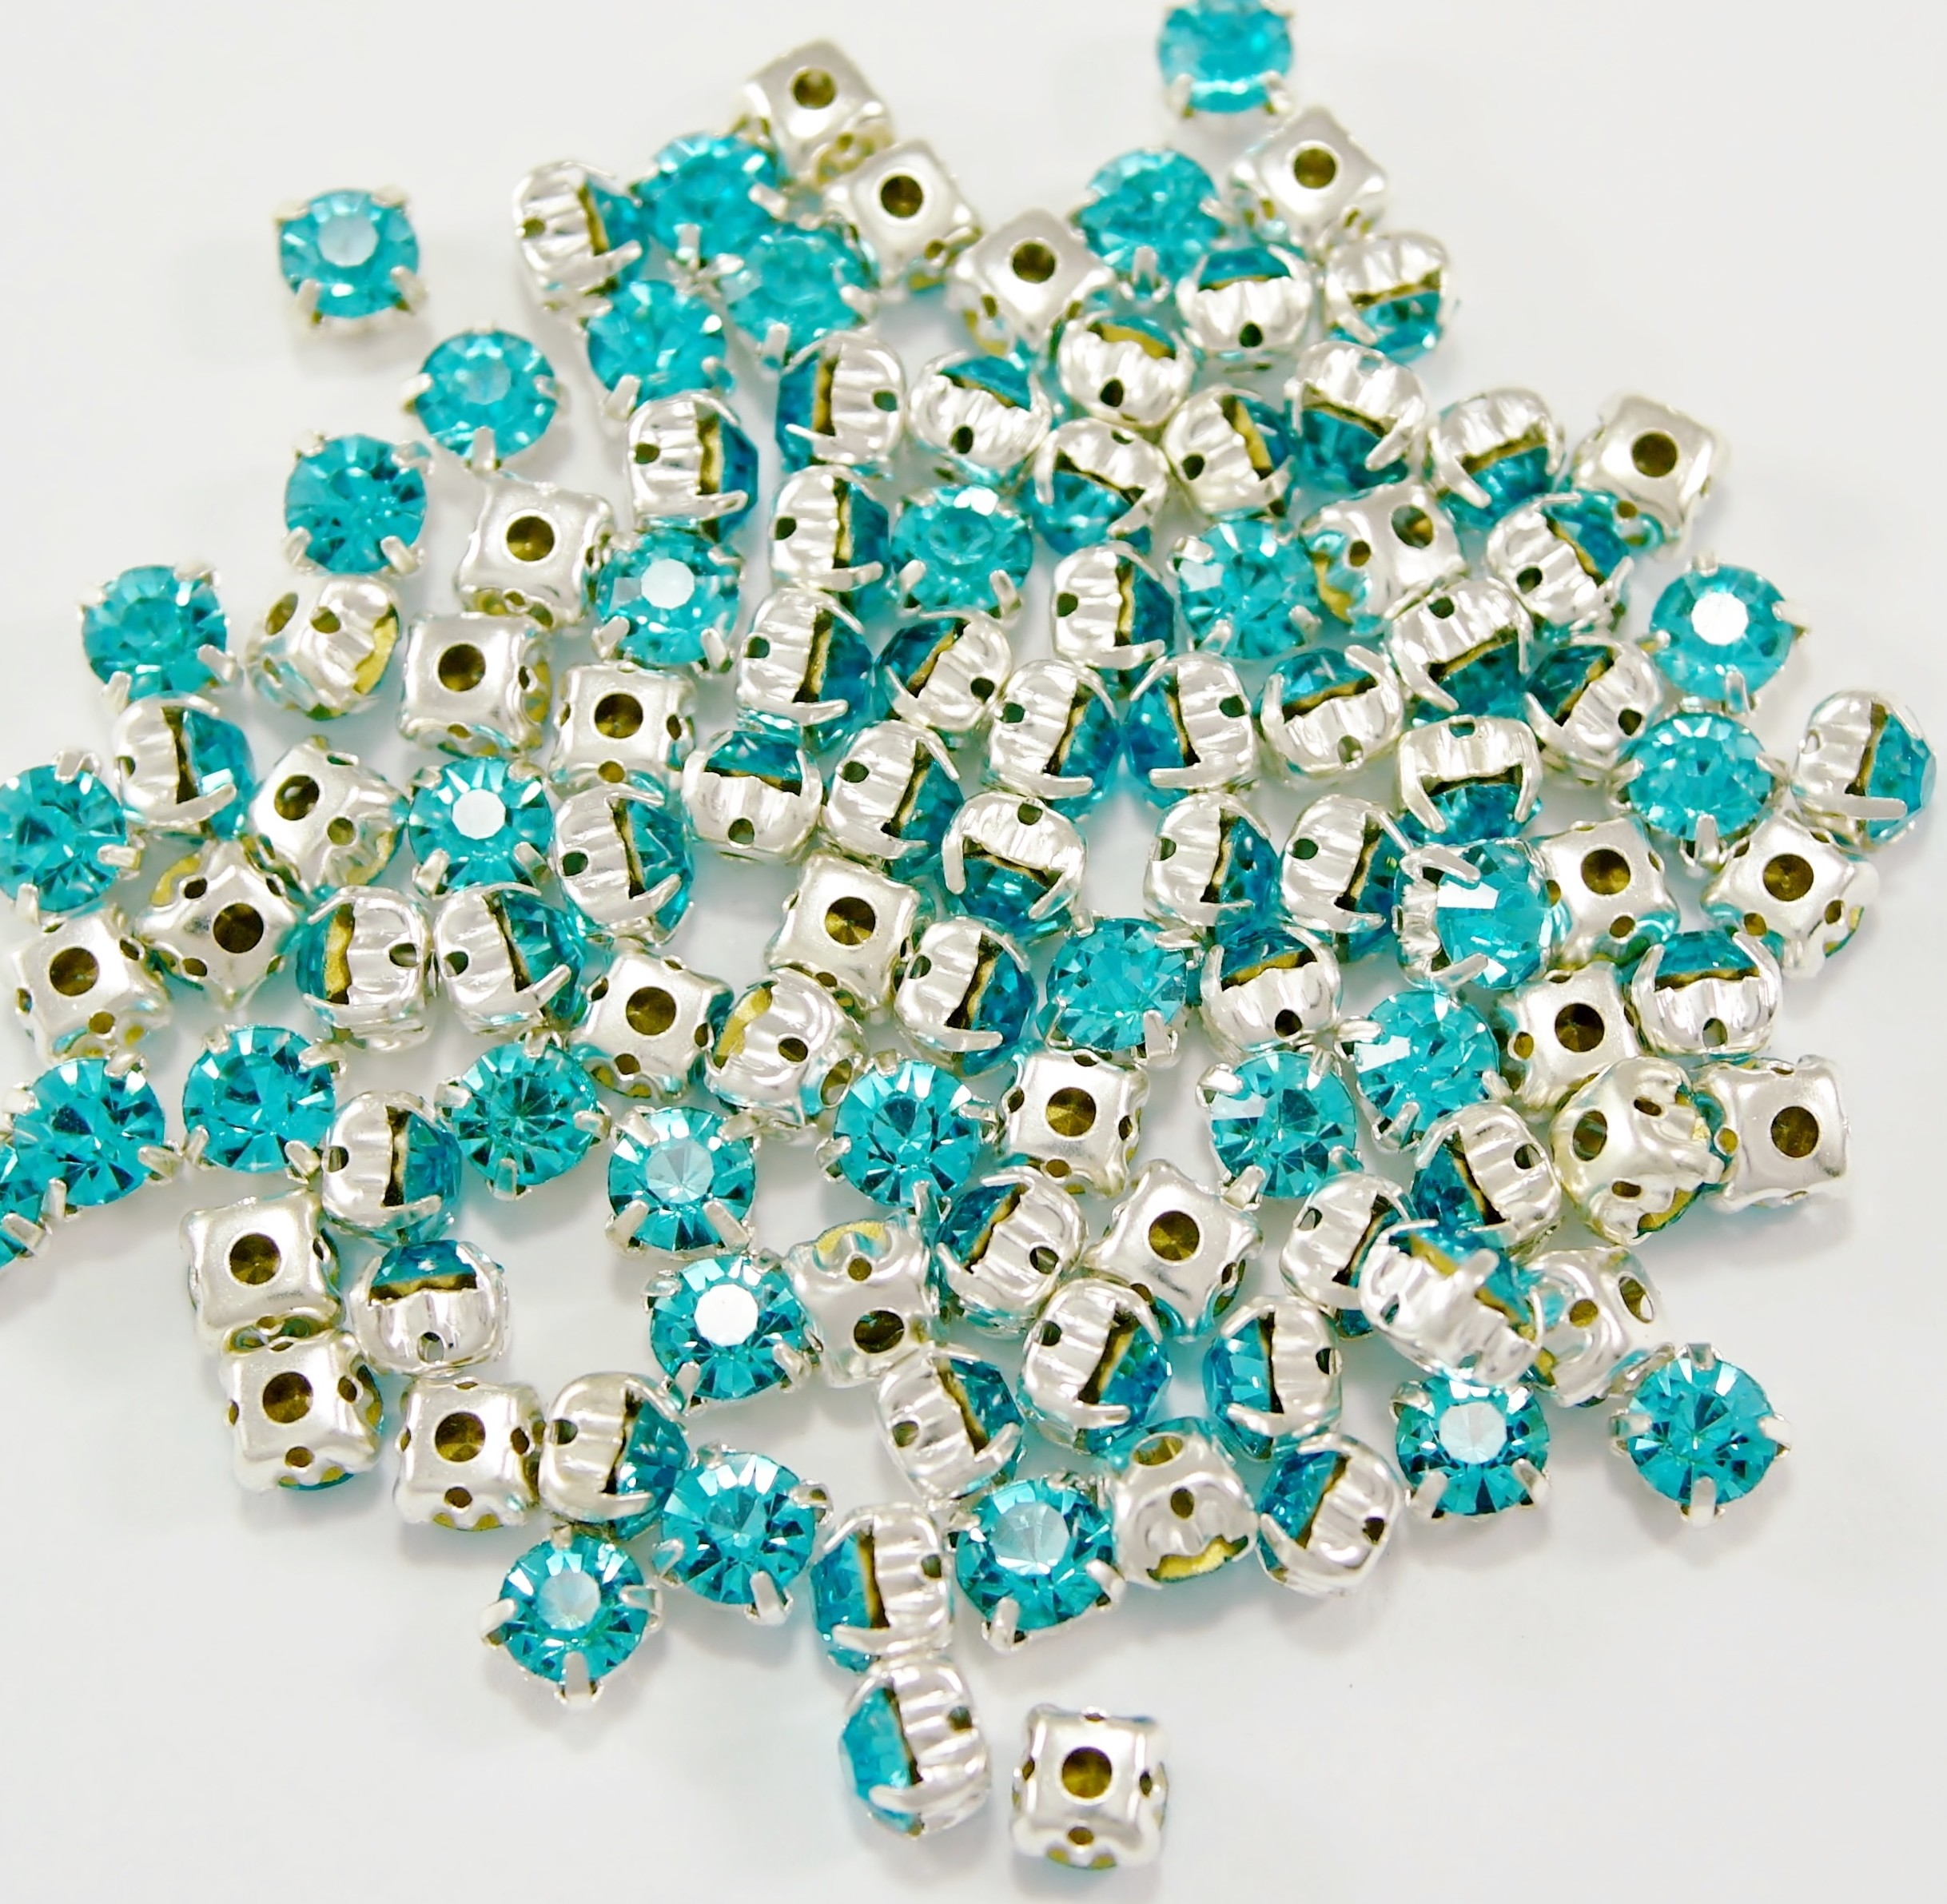 SS 34 montees - Aquamarine B3 ( 100 pcs )